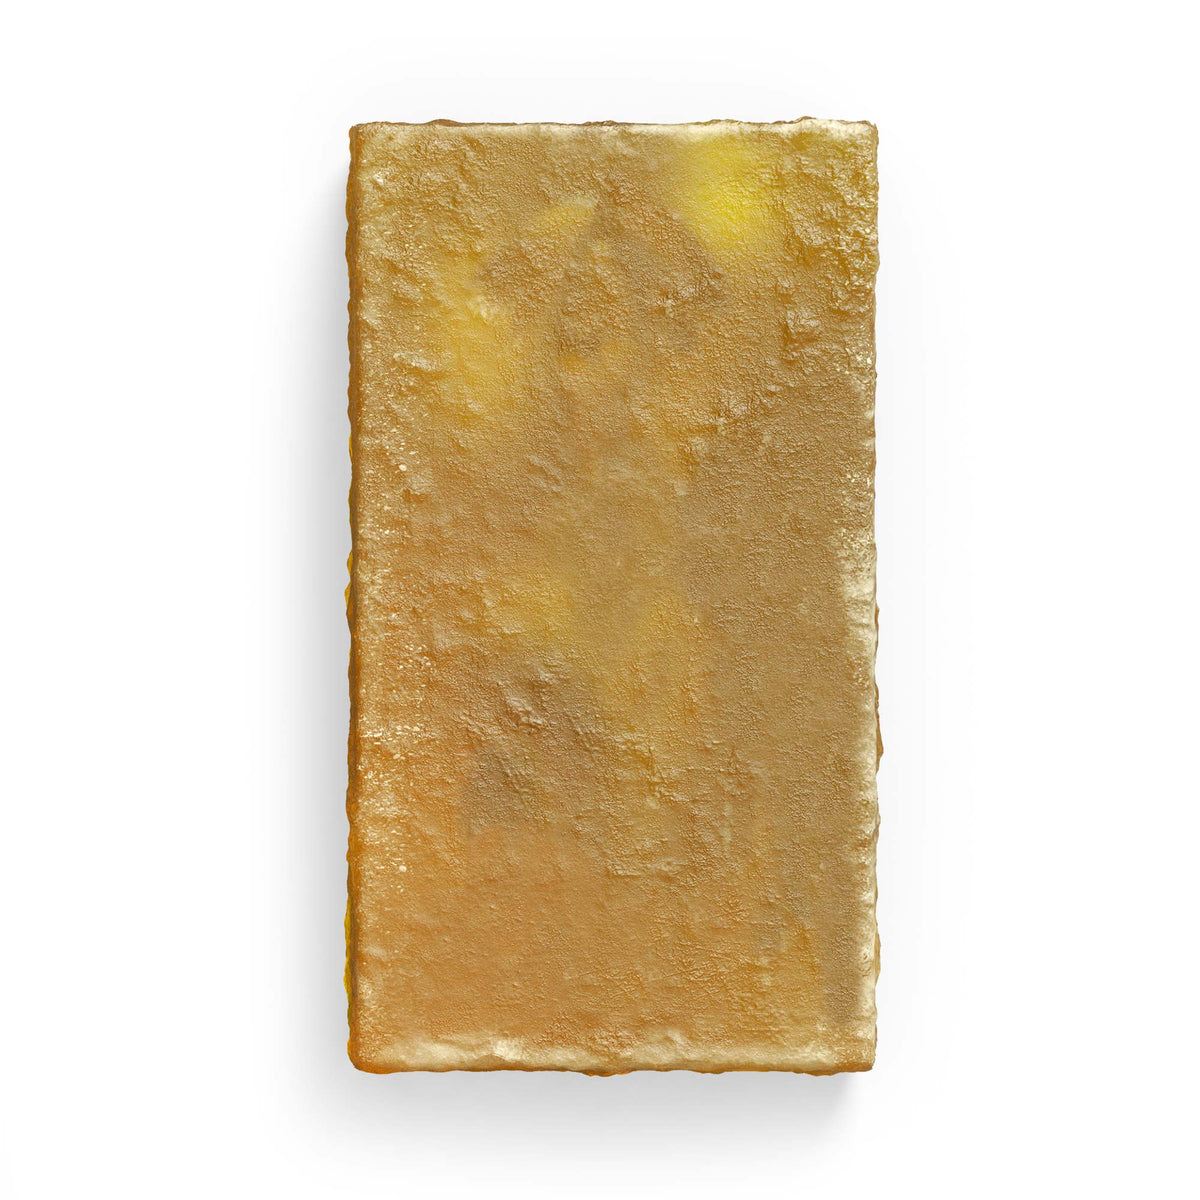 Golden Marigold Solid Soap Bar